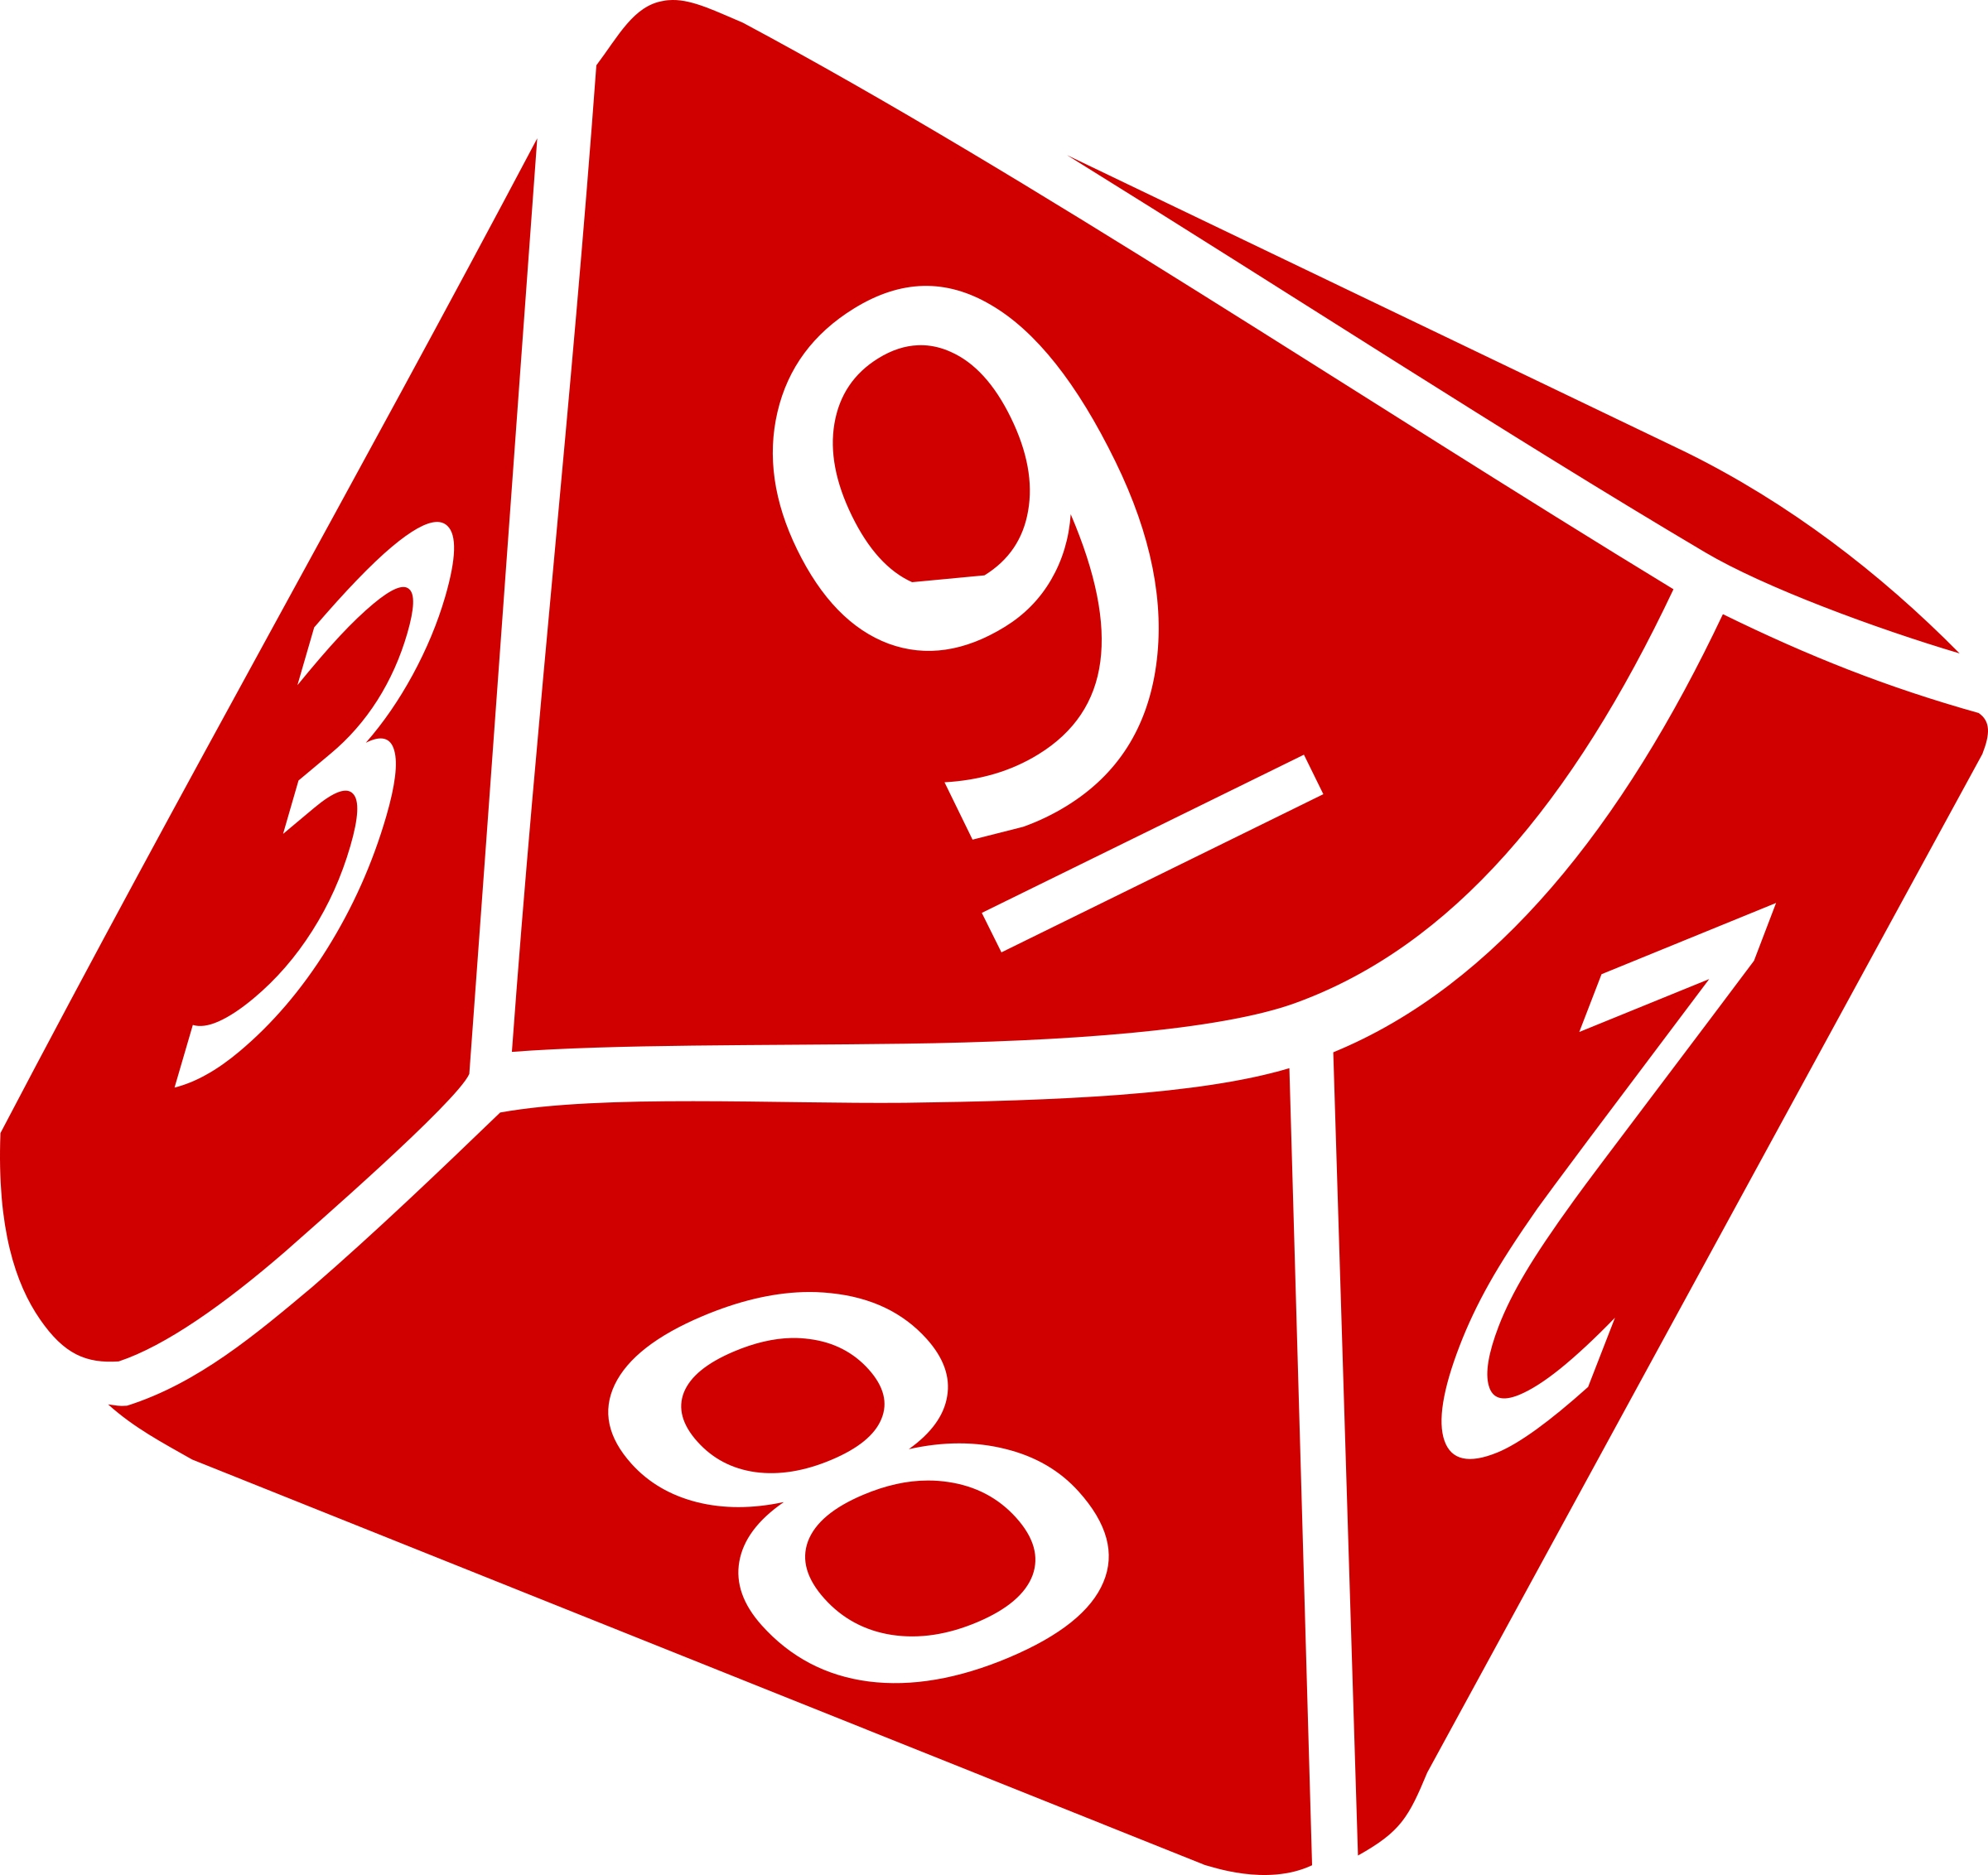 Ten Sided Dice by wirelizard